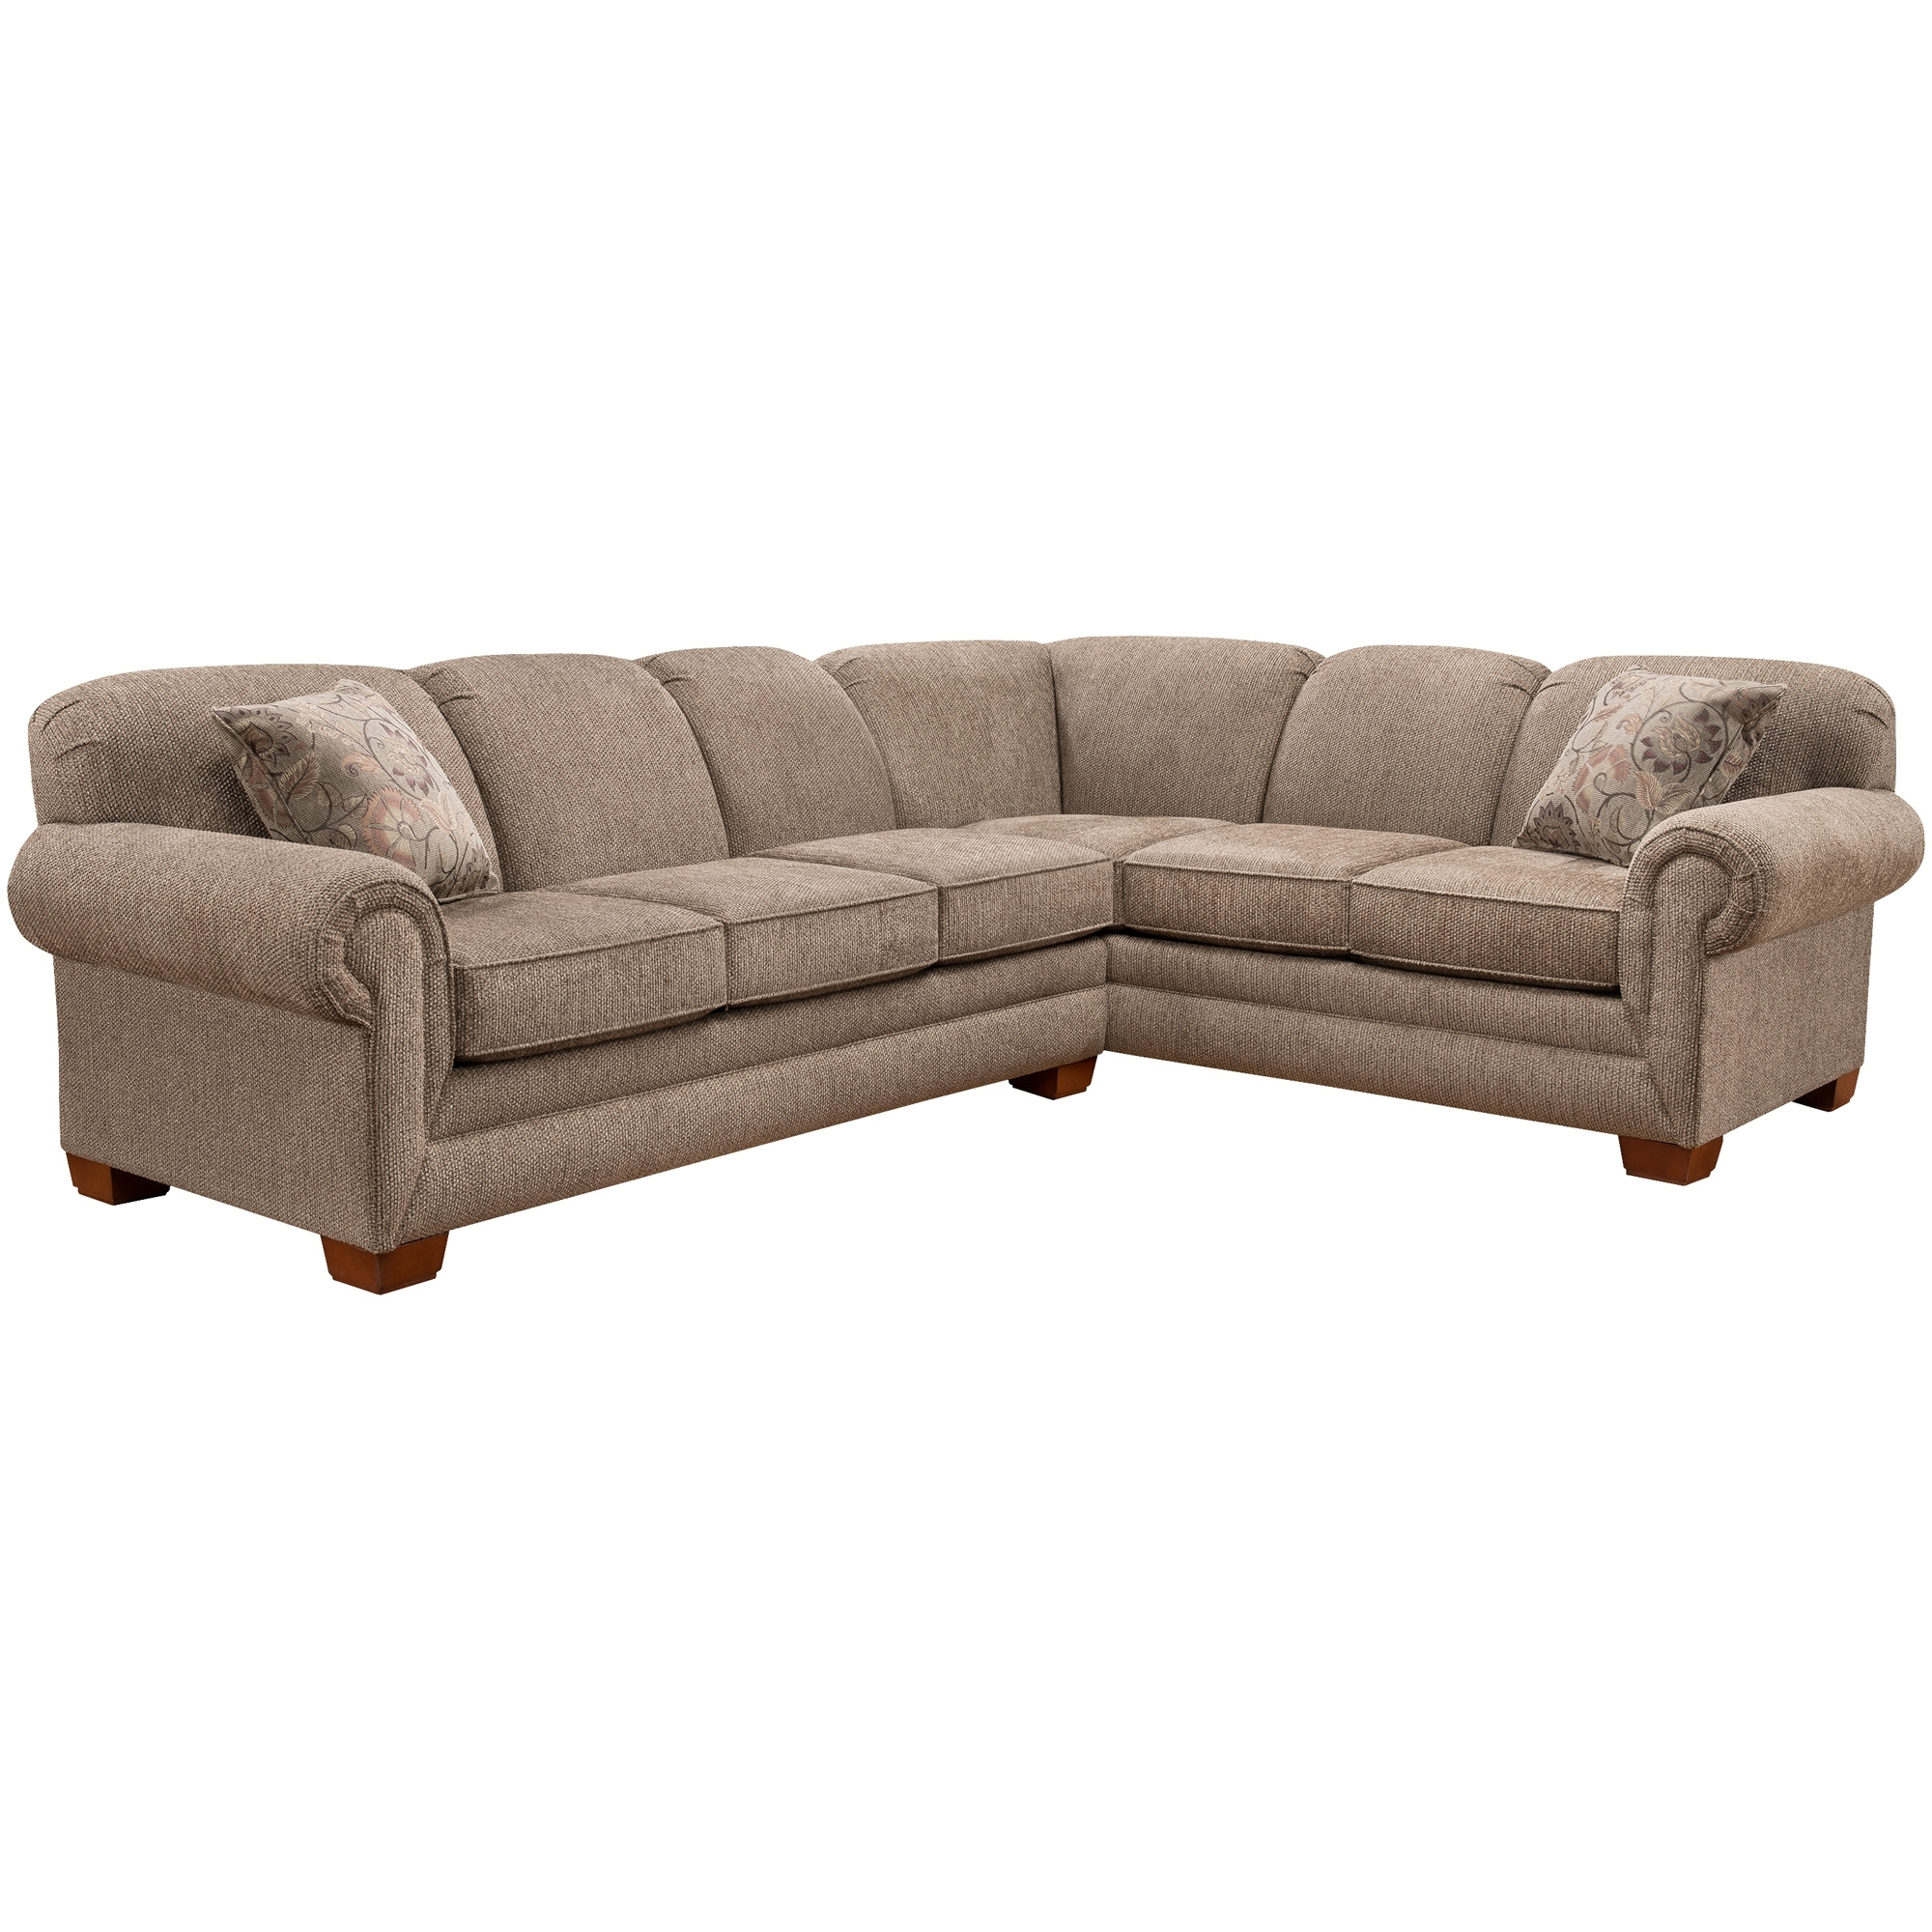 Slumberland Furniture | Tenor 2 Pc Brown Large Sectional With Regard To Harper Foam 3 Piece Sectionals With Raf Chaise (View 17 of 25)